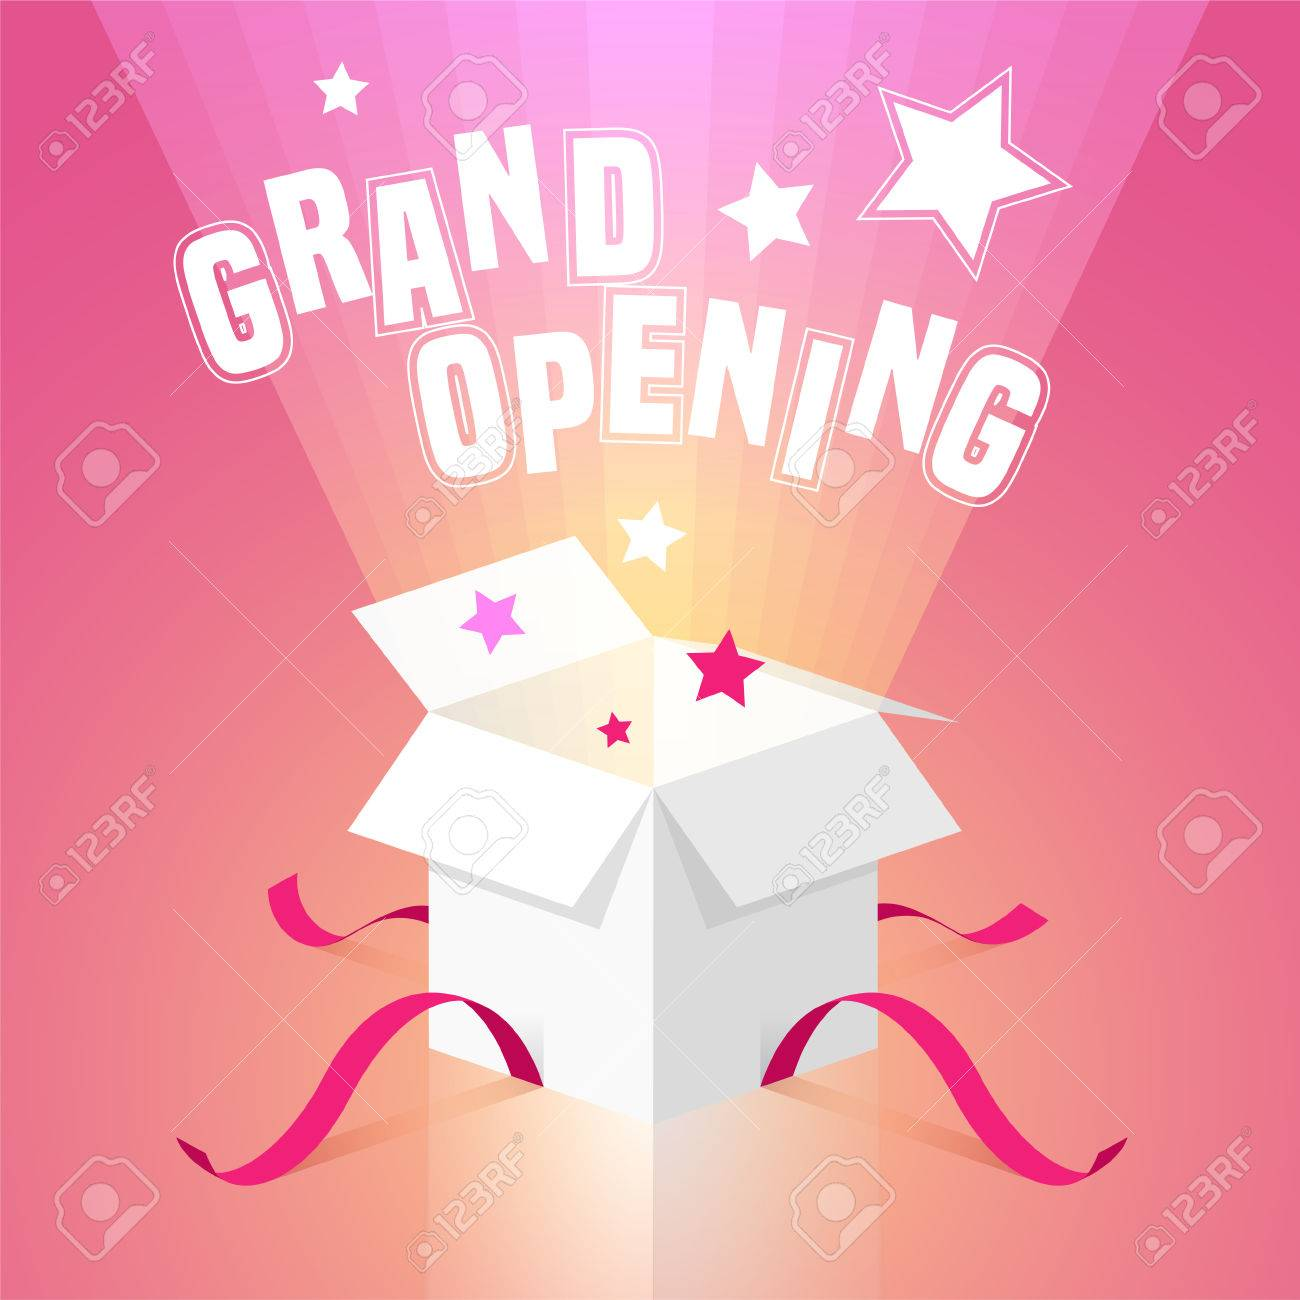 grand opening vector background with open box template design